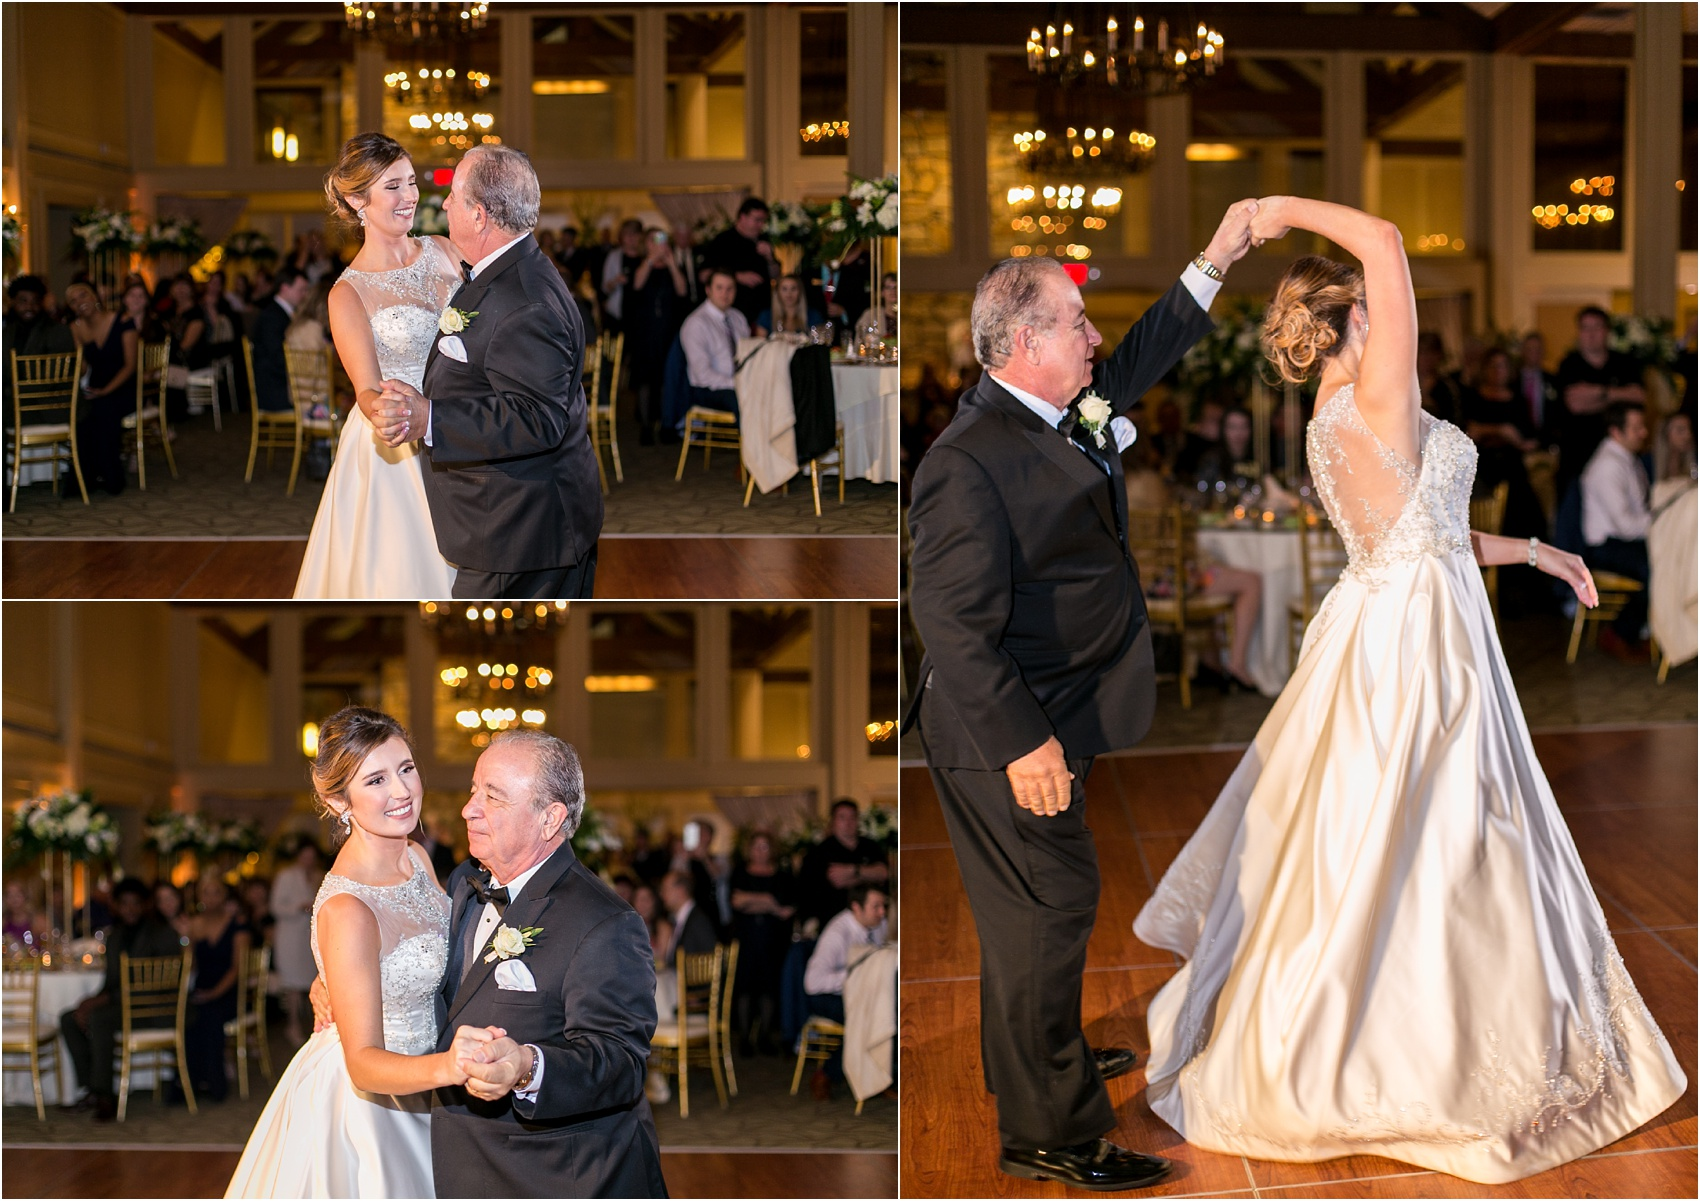 Savannah Eve Photography- Bottiglion-Scope Wedding- Sneak Peek-79.jpg